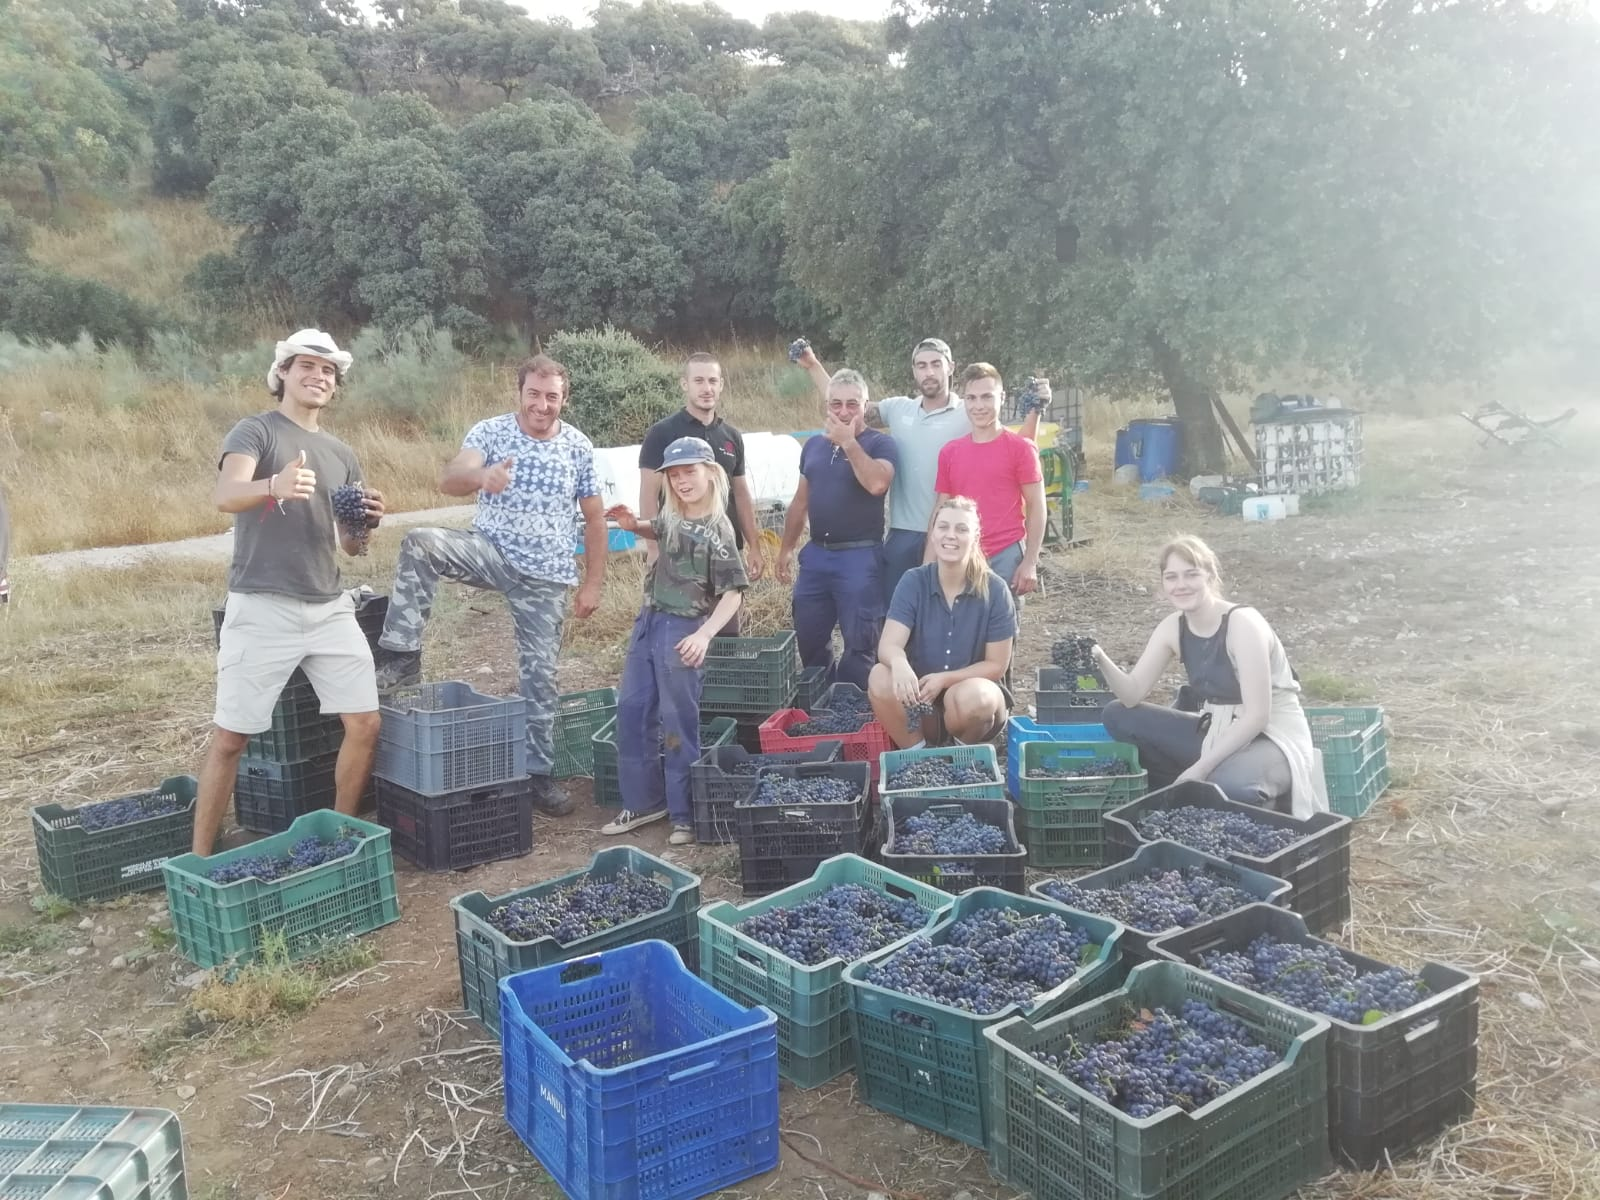 The vinyard harvest team